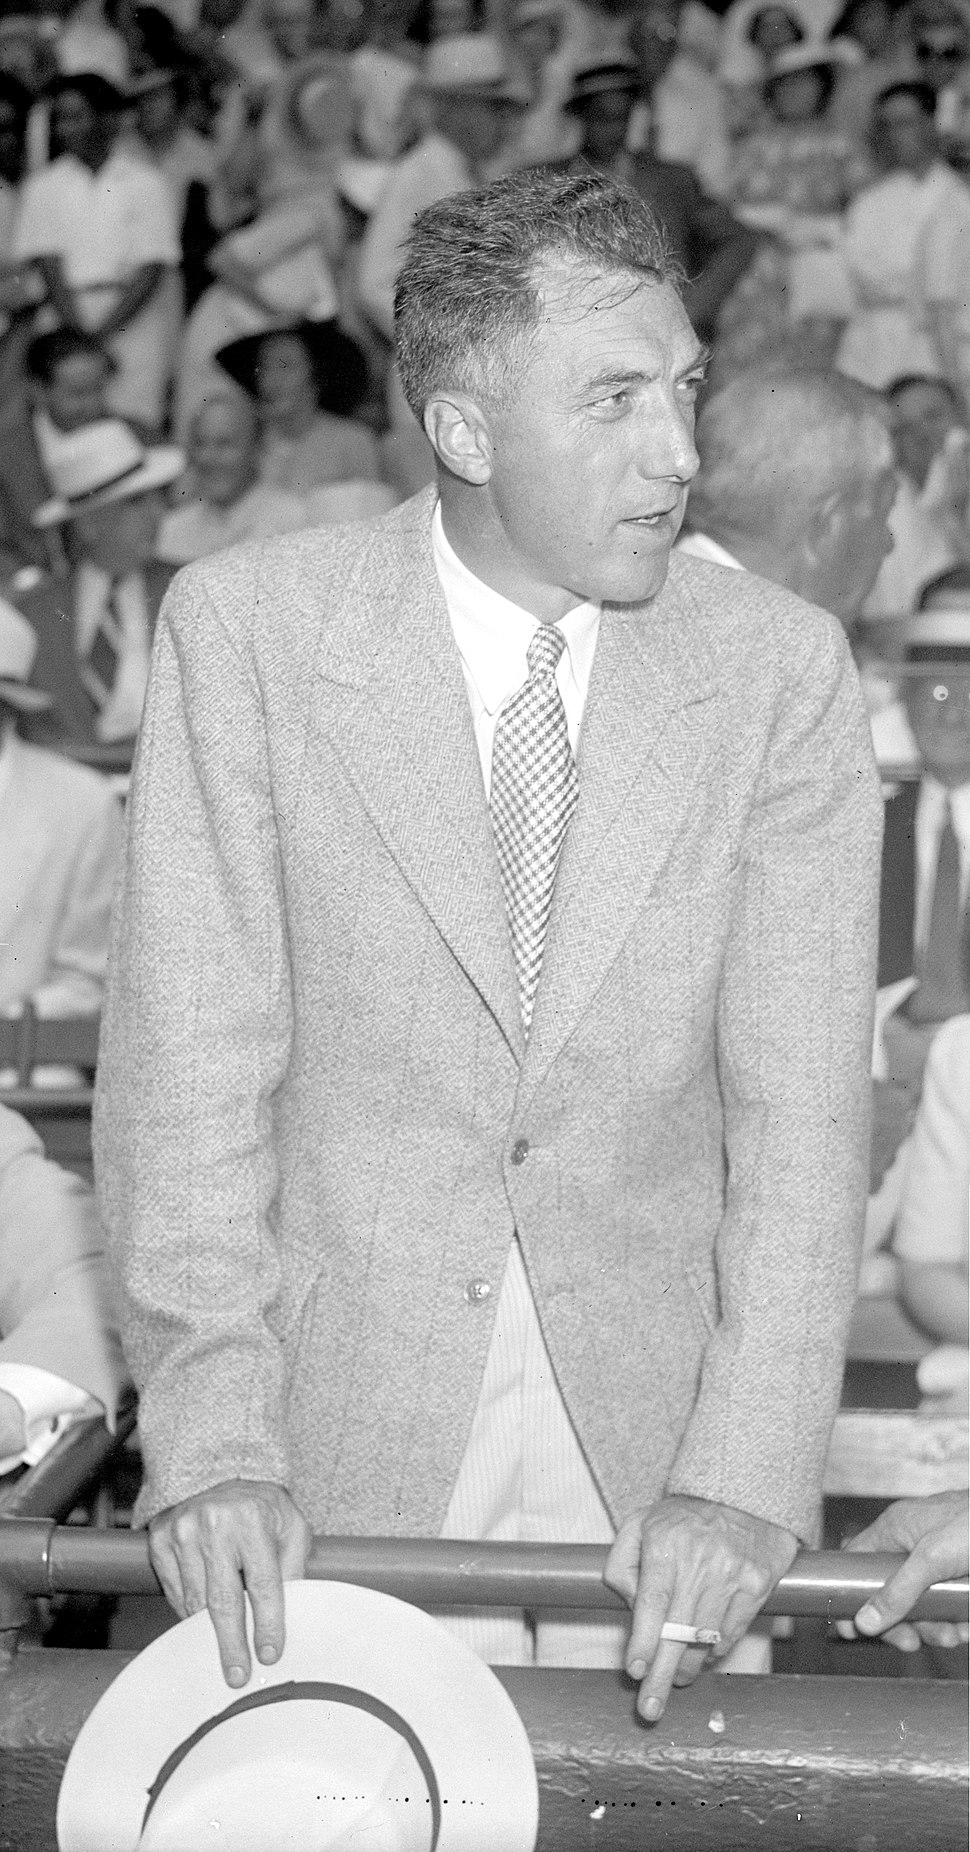 Ford Frick at 1937 All-Star Game (cropped and adjusted)